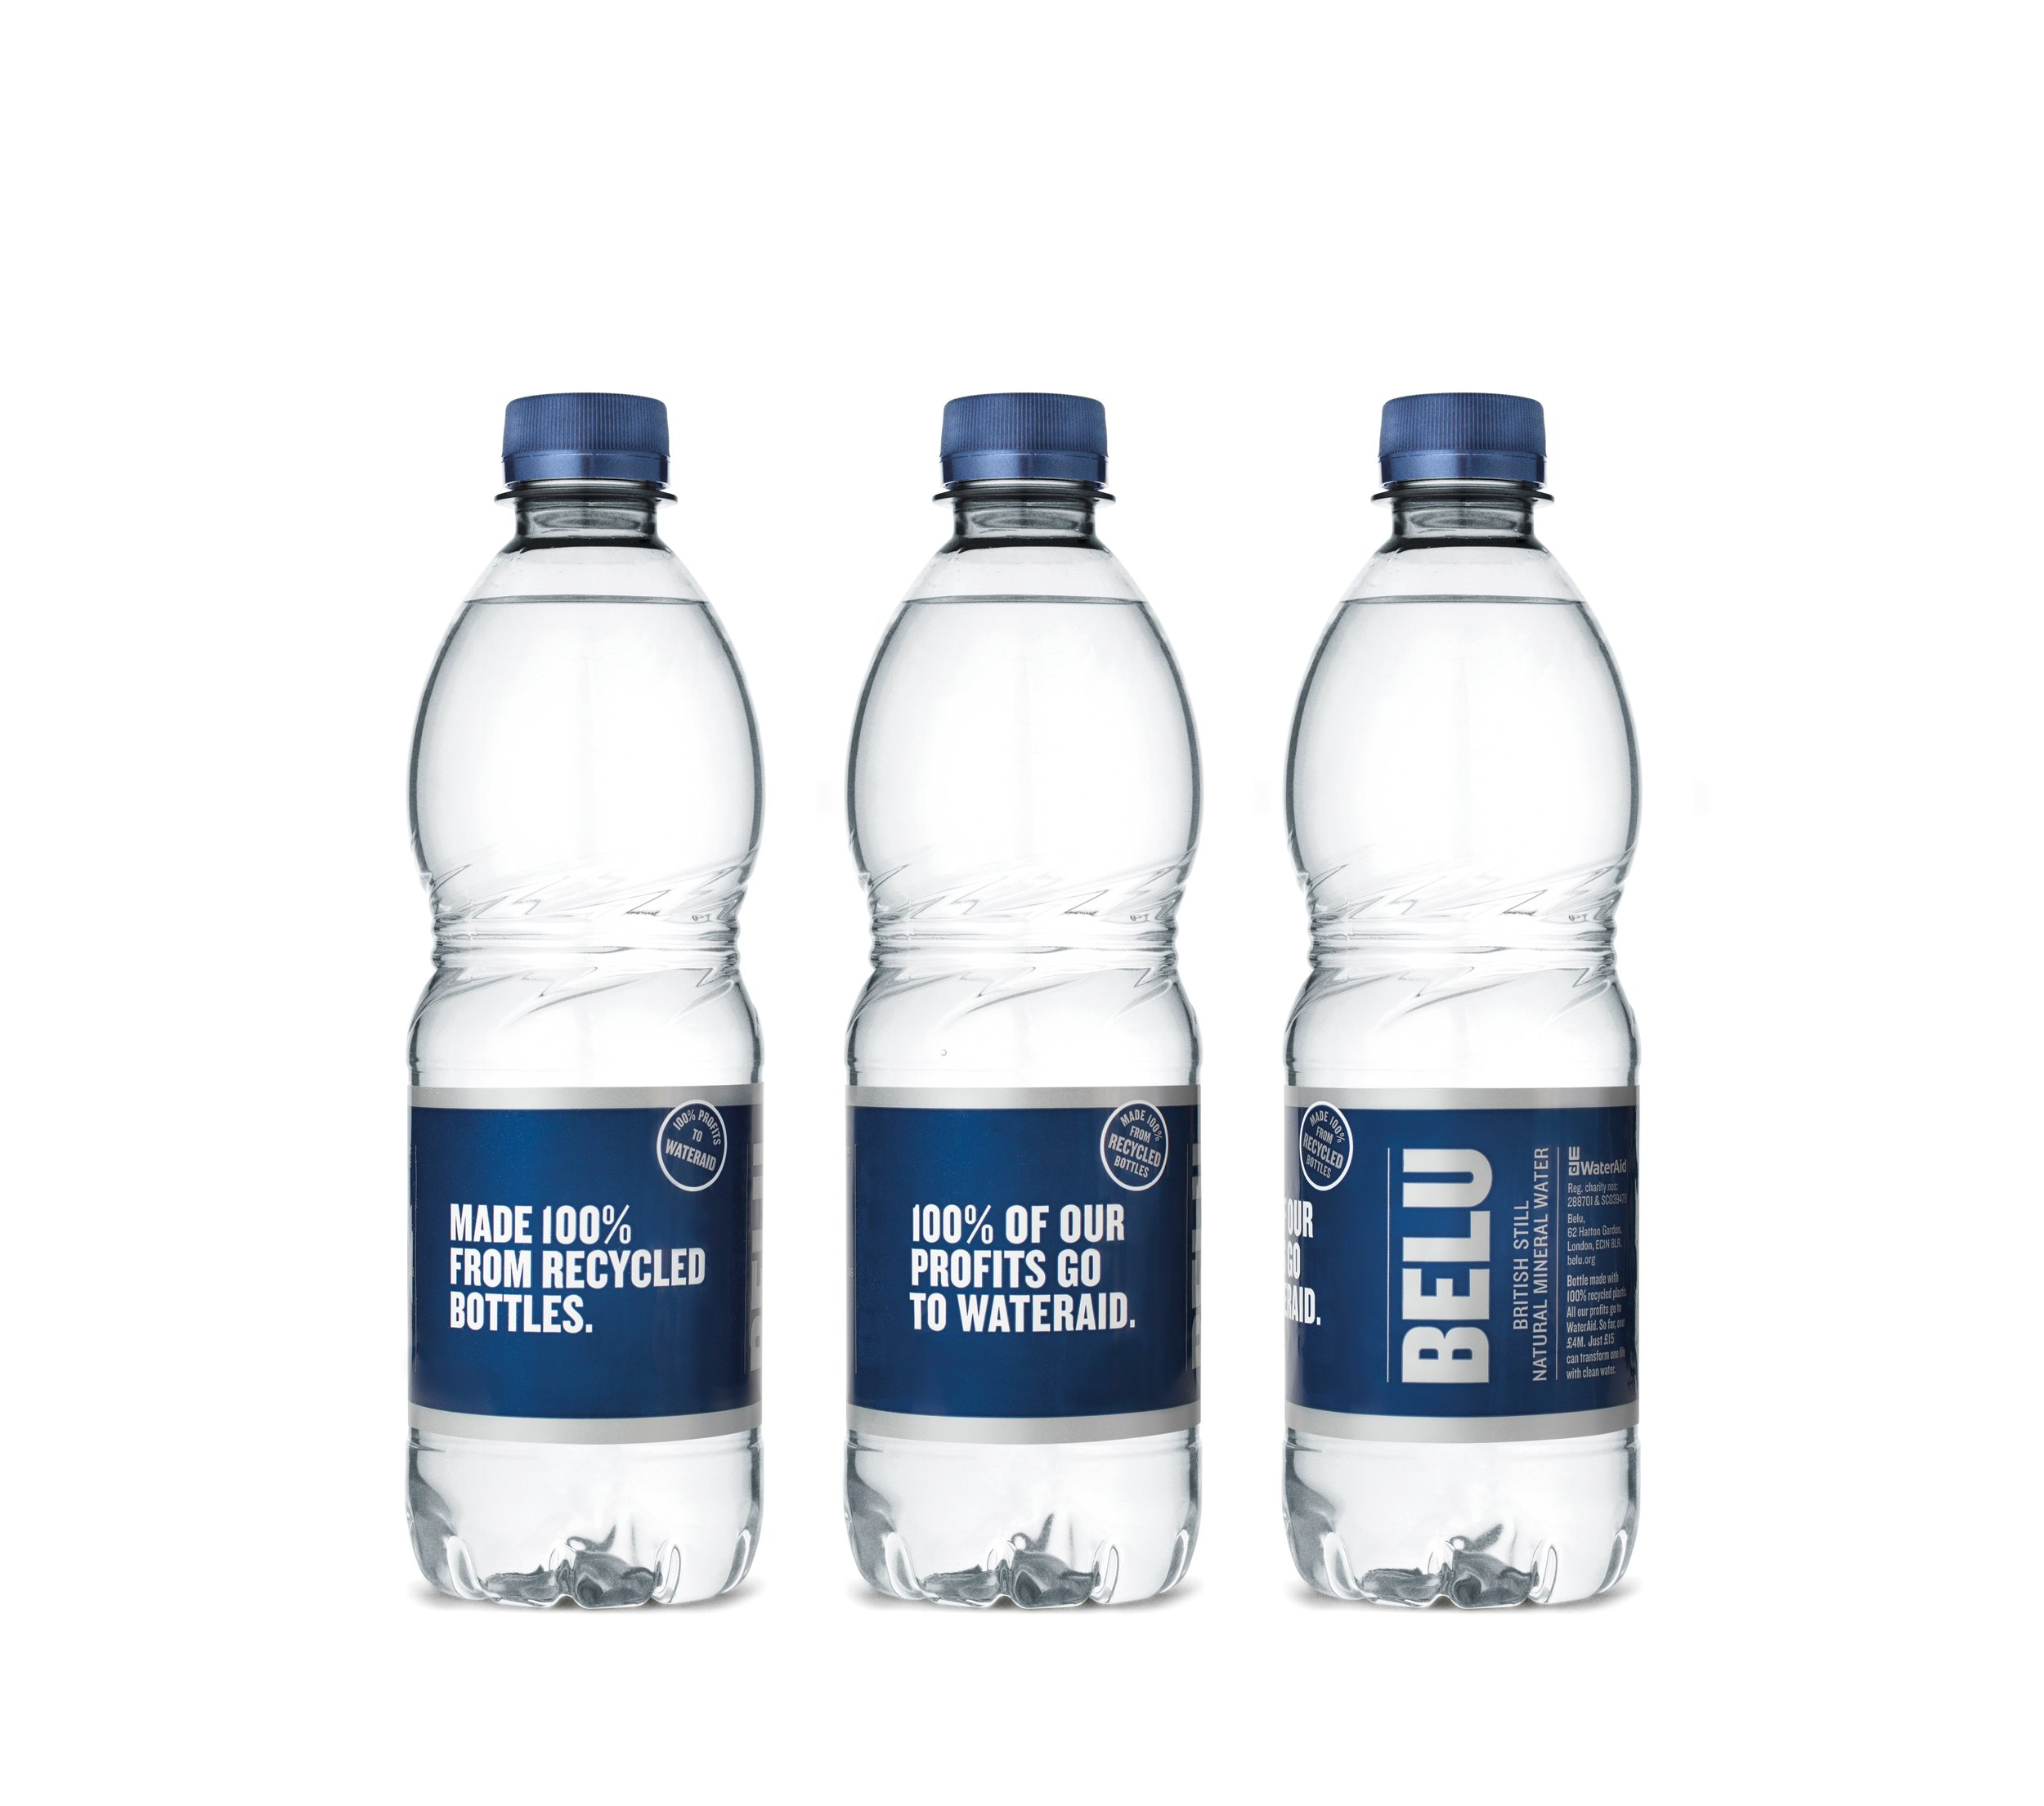 Bottles made 100% from recycled bottles